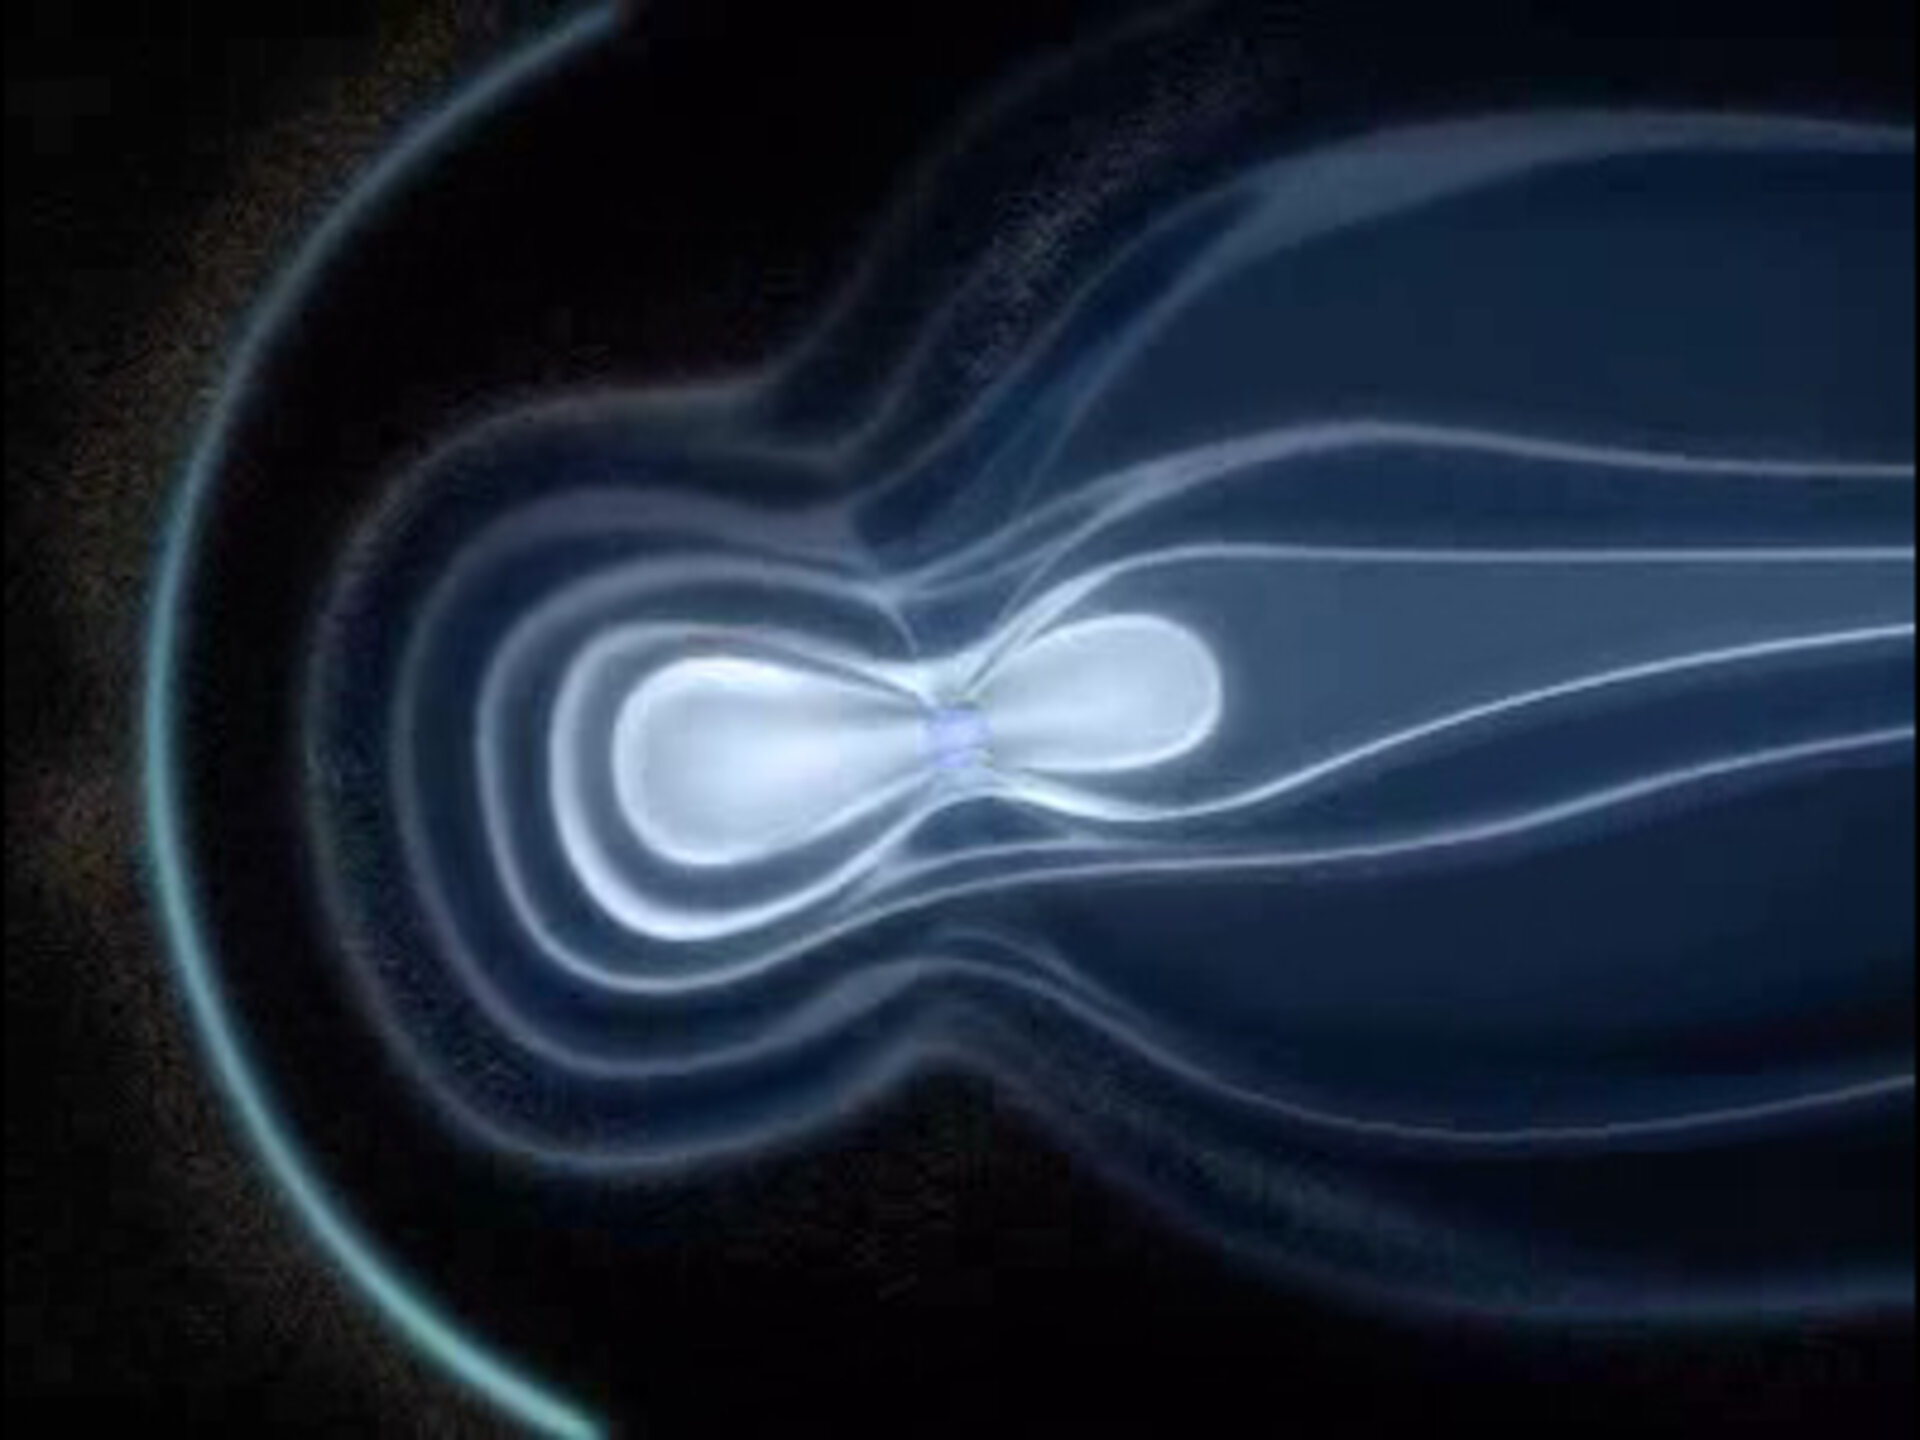 Artist impression of Earth's magnetic field